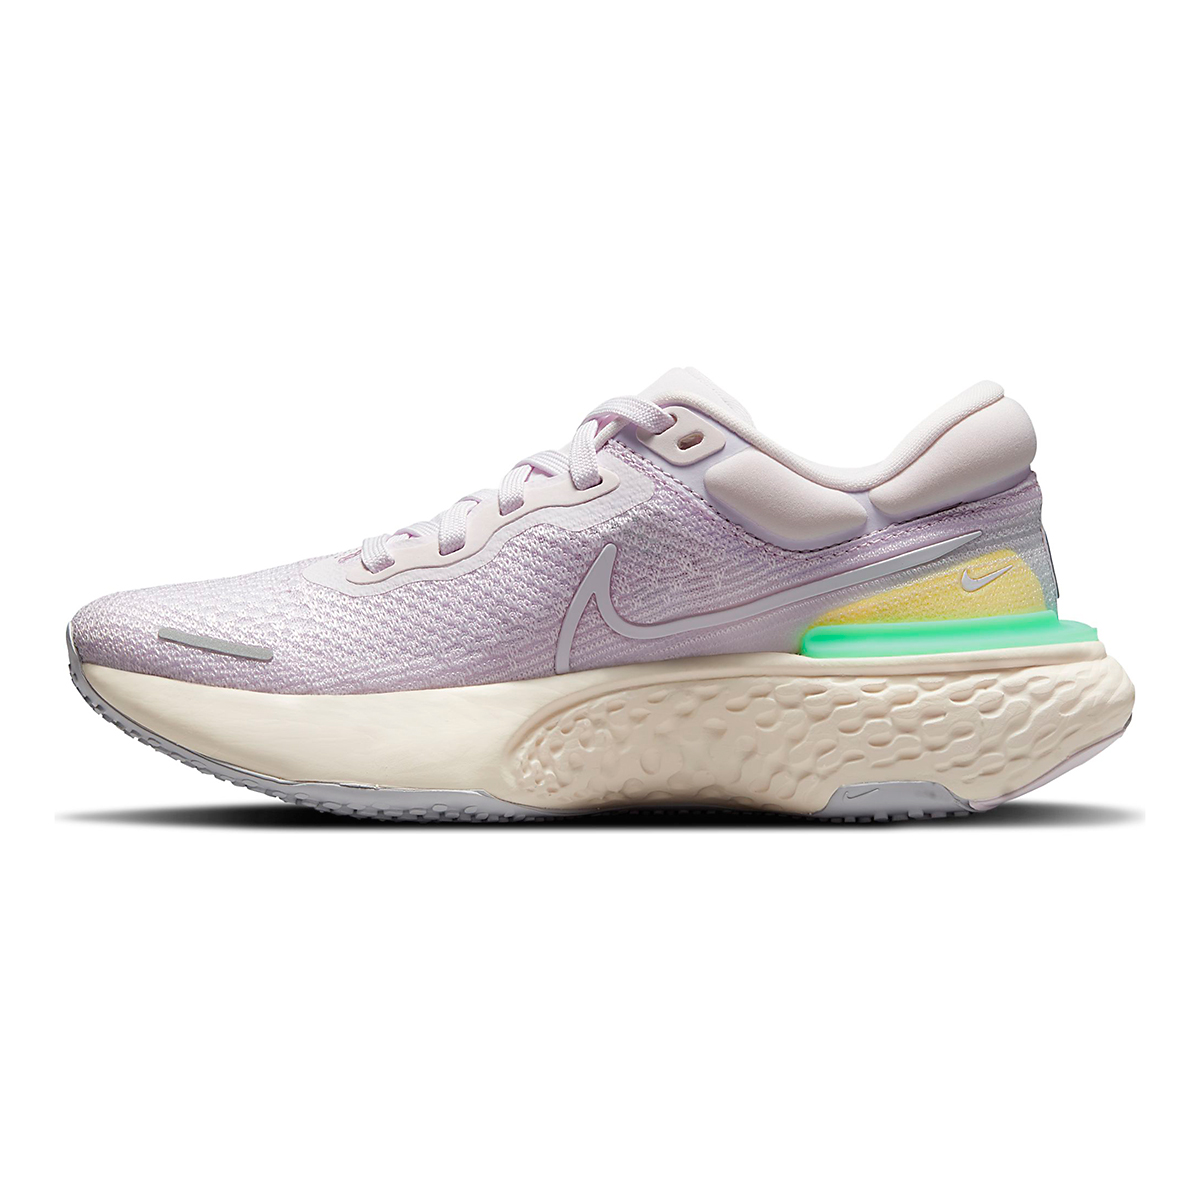 Women's Nike Zoomx Invincible Run FlyKnit Running Shoe - Color: Light Violet/White/Infinite Lilac - Size: 5 - Width: Regular, Light Violet/White/Infinite Lilac, large, image 2